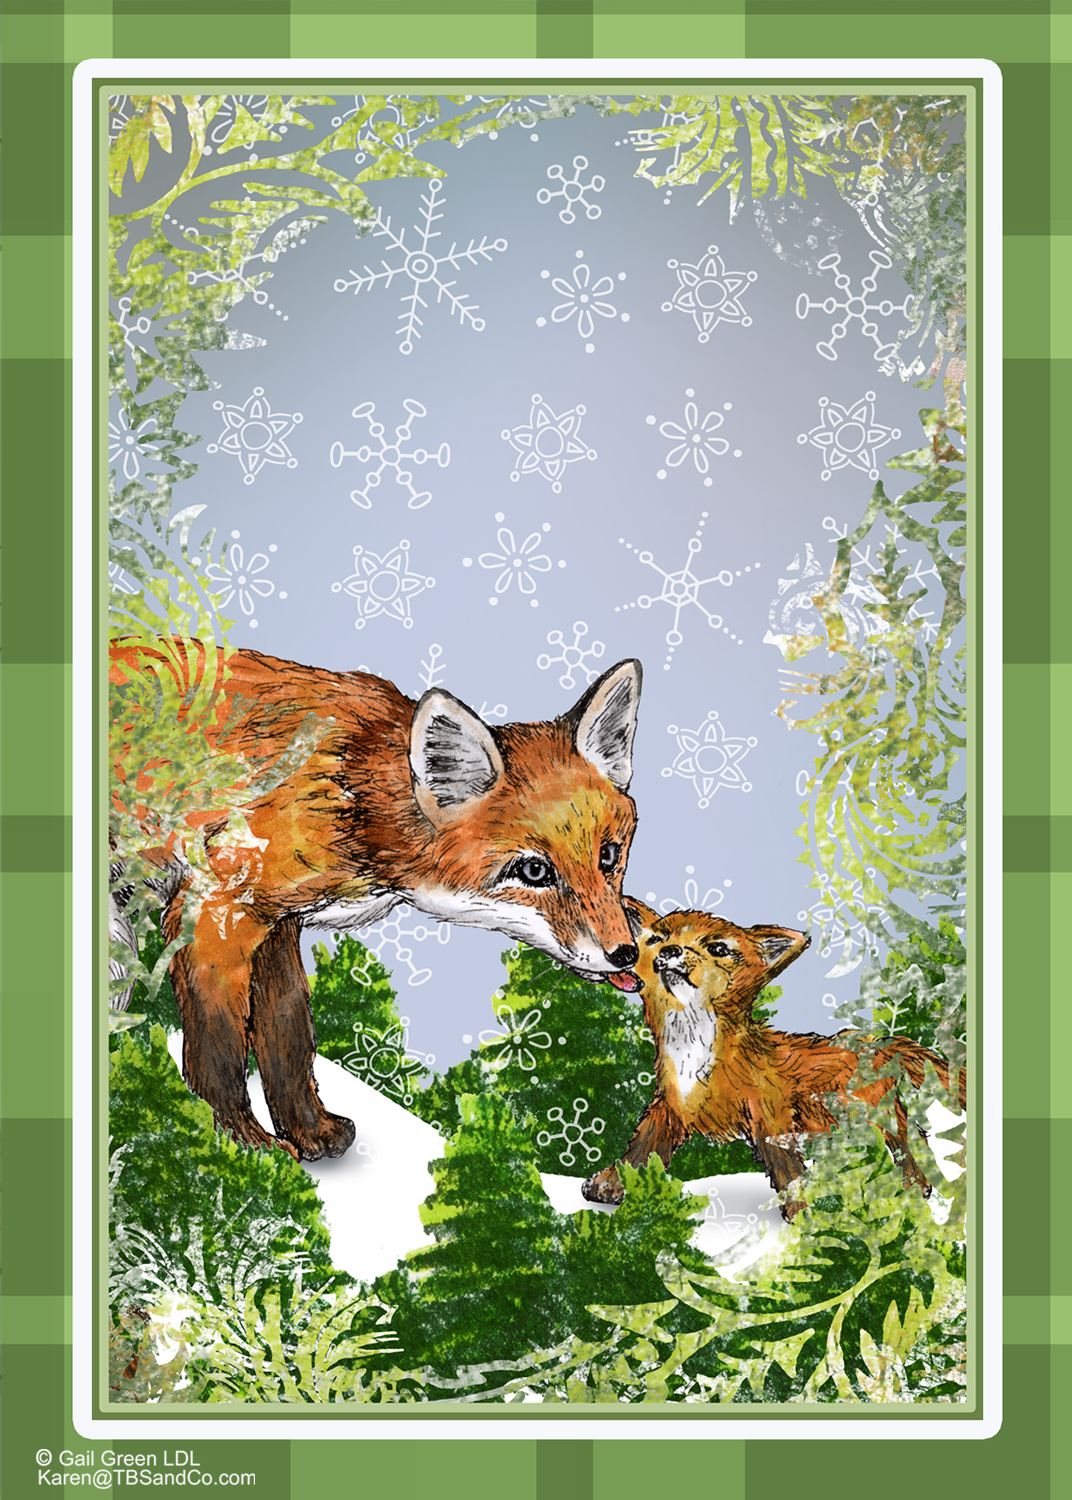 GG_WinterStationery_123-NatureTails.jpg